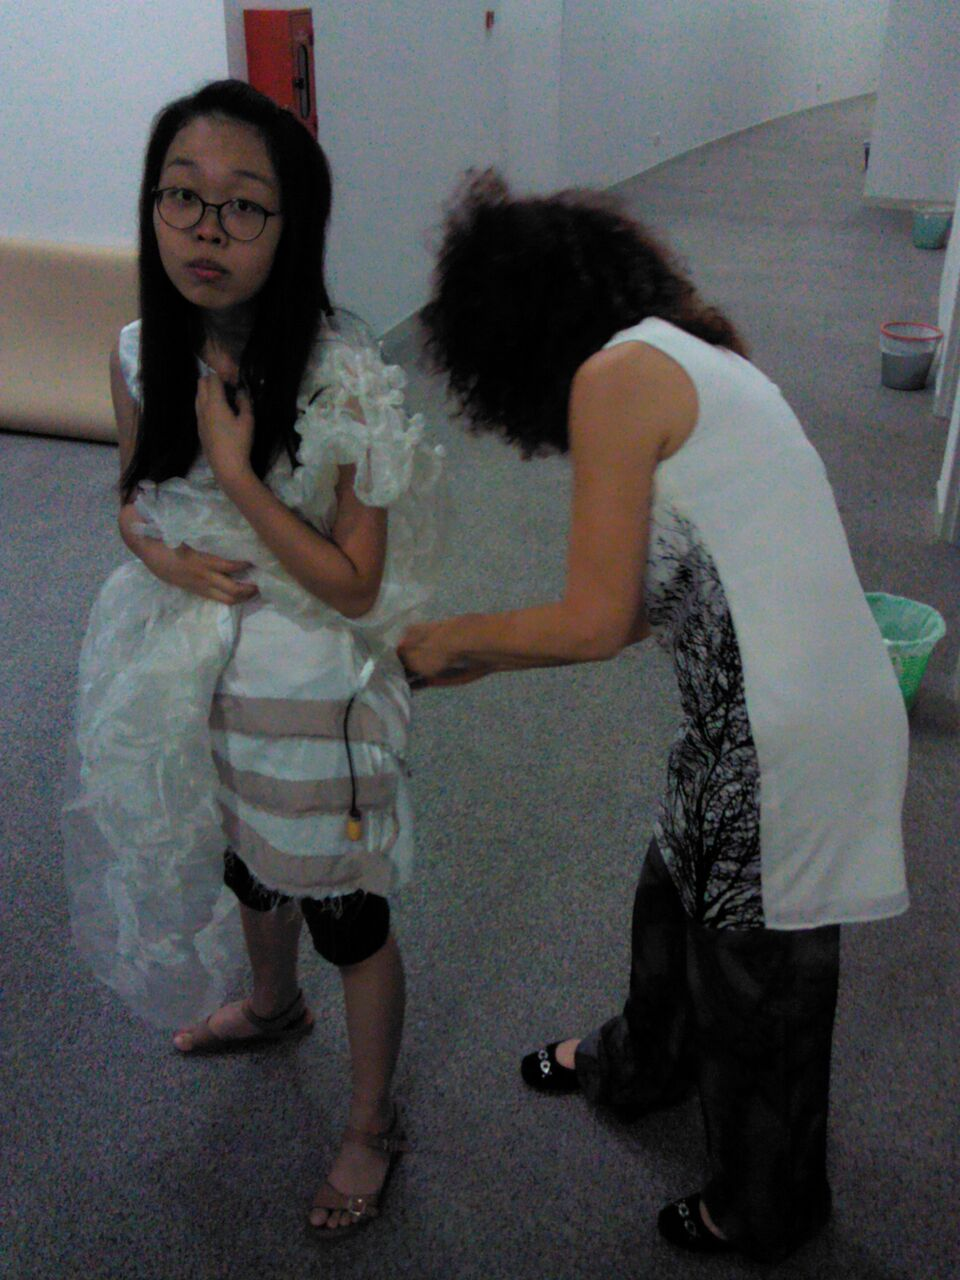 Here, Galina is helping me out with the power bank attachment to the lily pad which is located at the back of my dress.